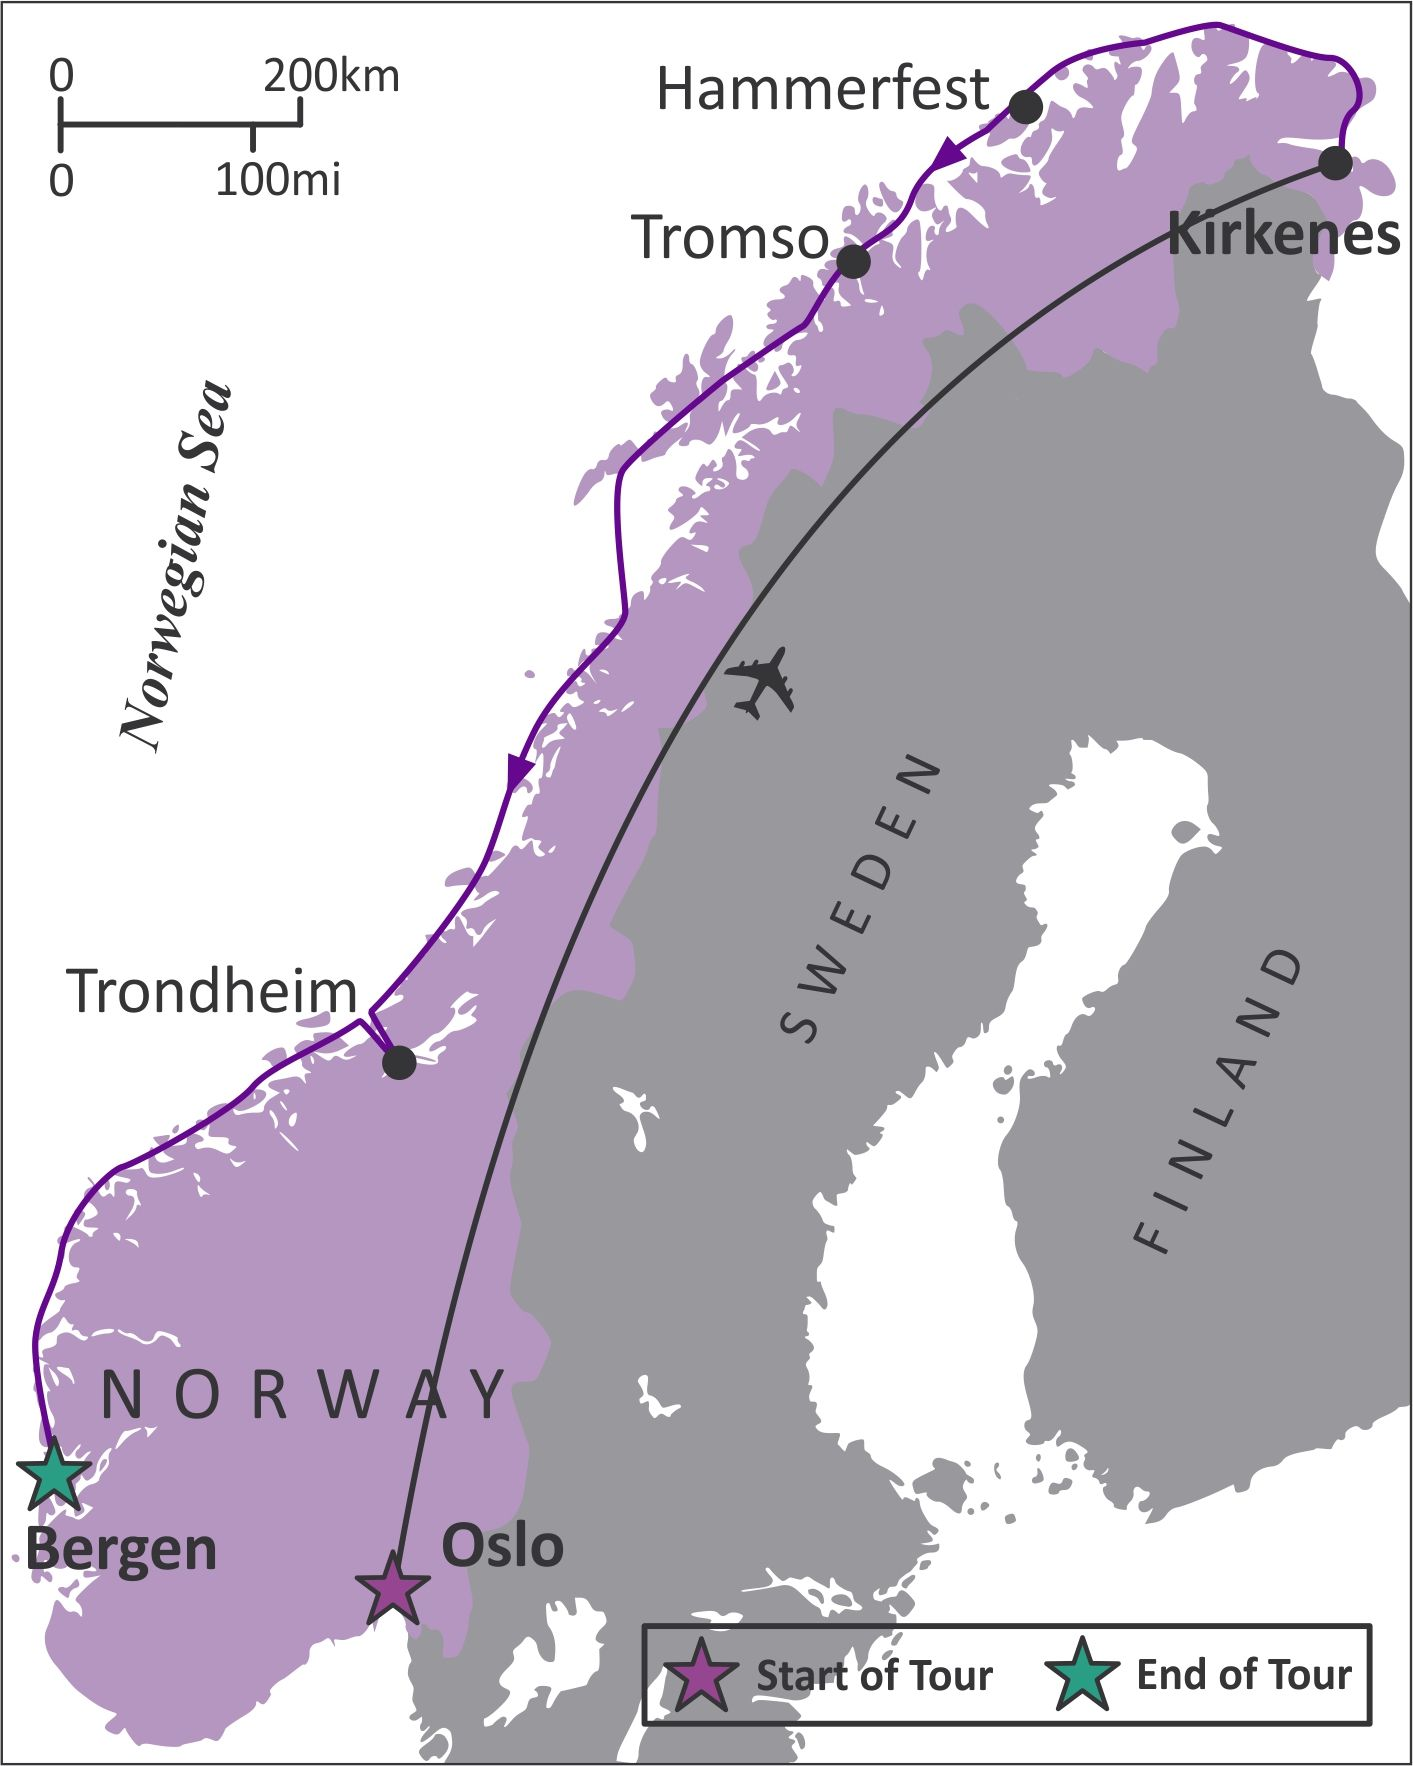 Sights And Soul Travels Winter Tour To Norway Overview - Norway nutshell map